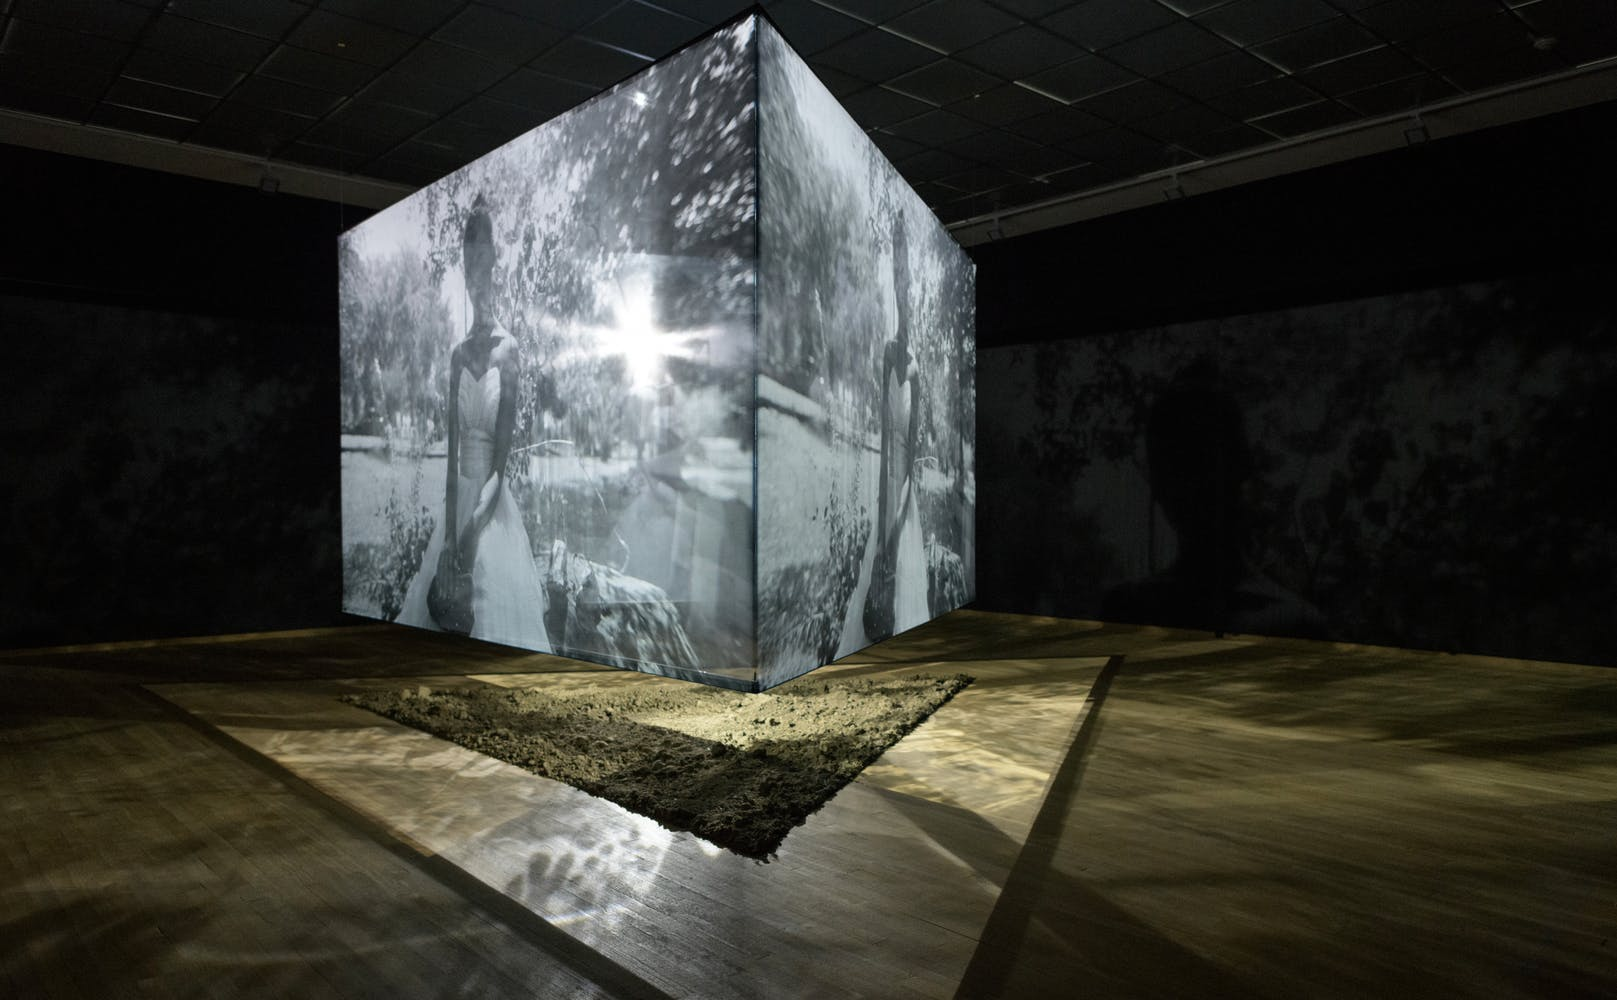 Image of suspended cube within a gallery with images projected on each surface